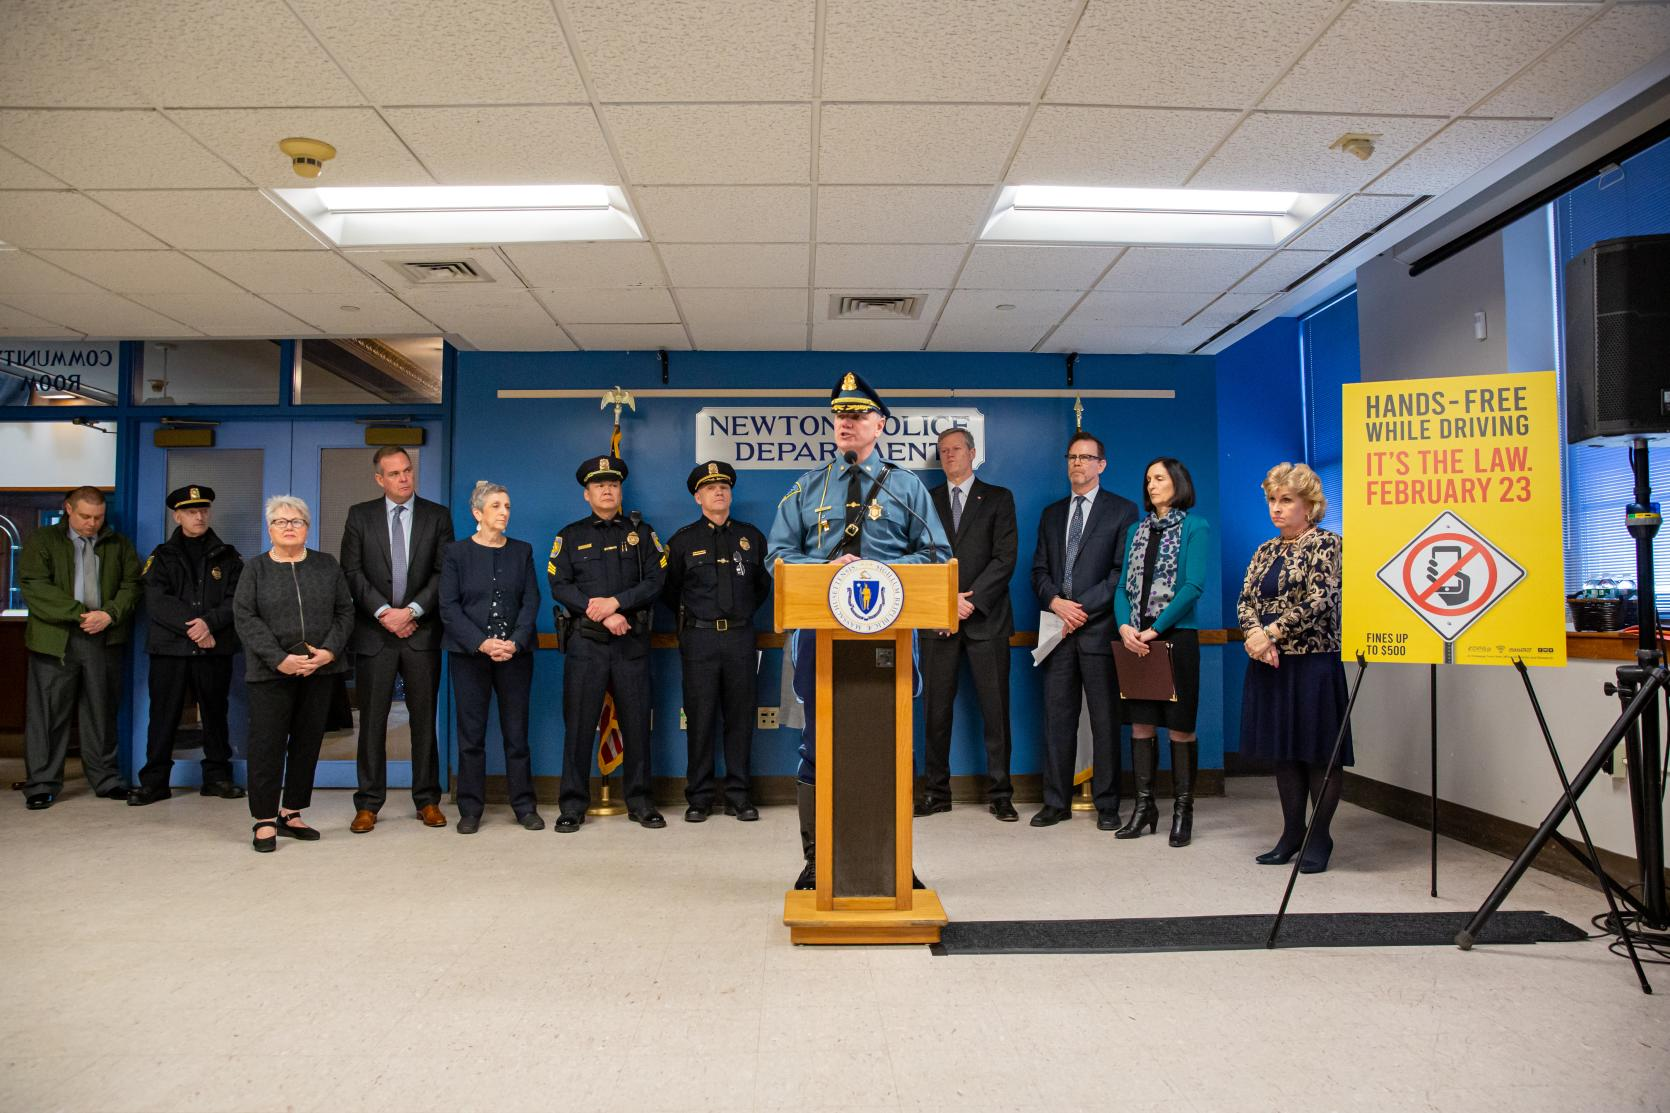 Baker-Polito Administration Brings Awareness to New Hands-Free Law Taking Effect Sunday